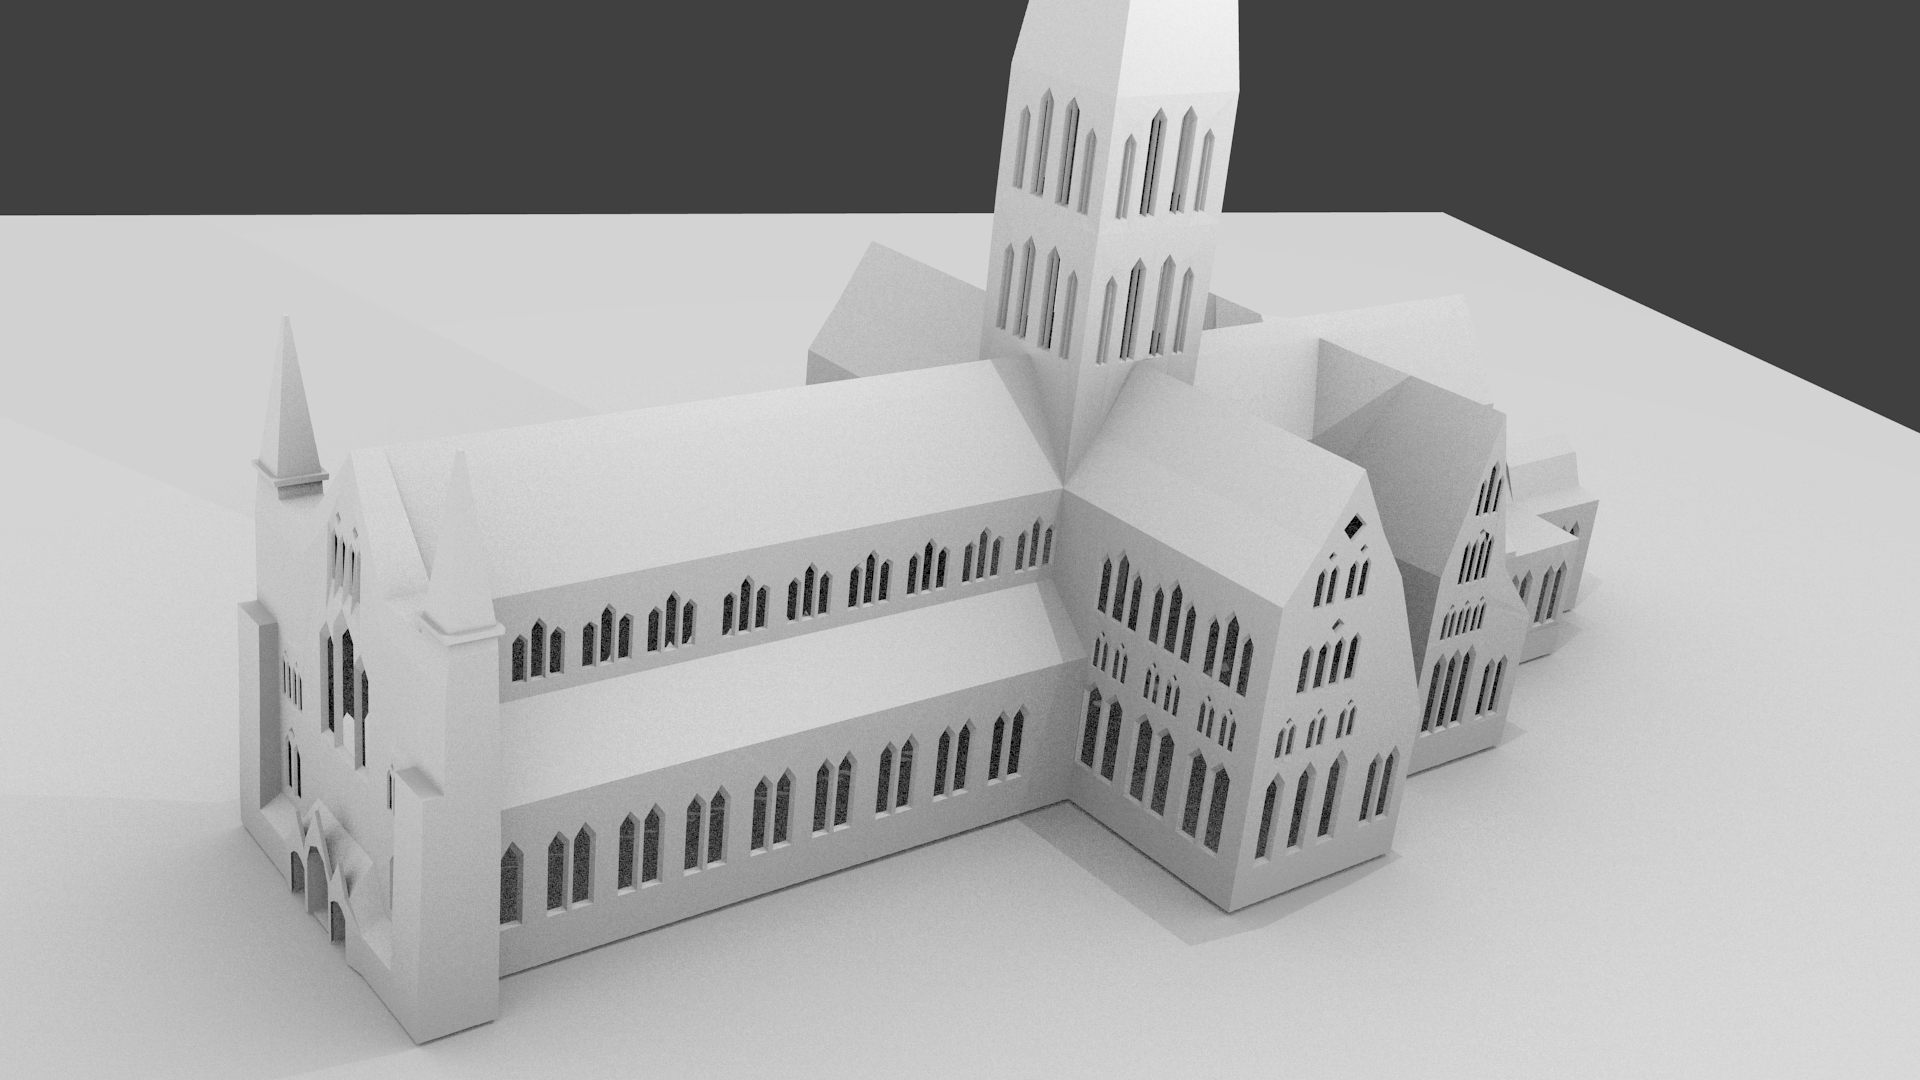 Cathedral_Modeling3